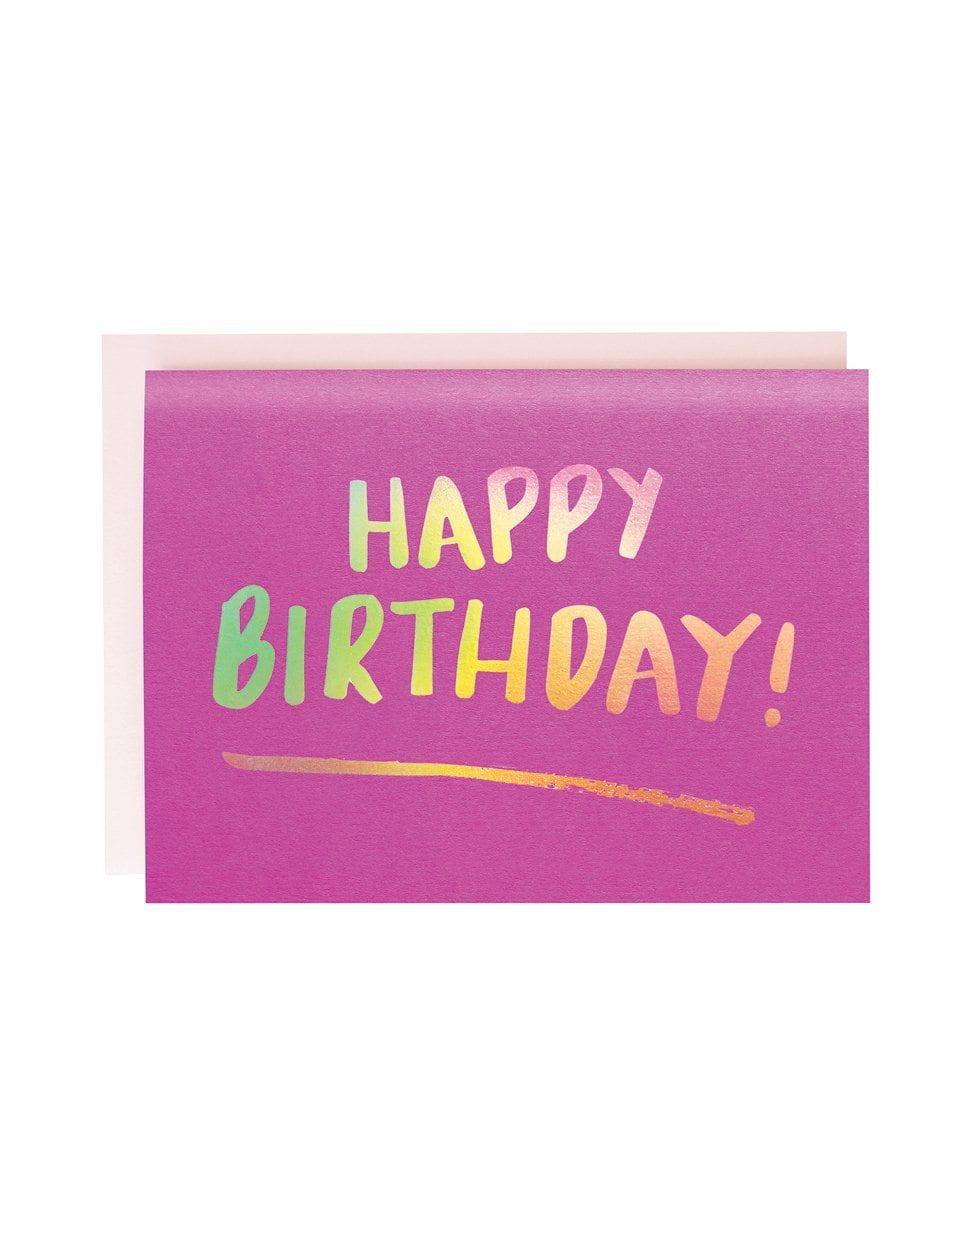 Happy Birthday Brush Pink foiled greeting card